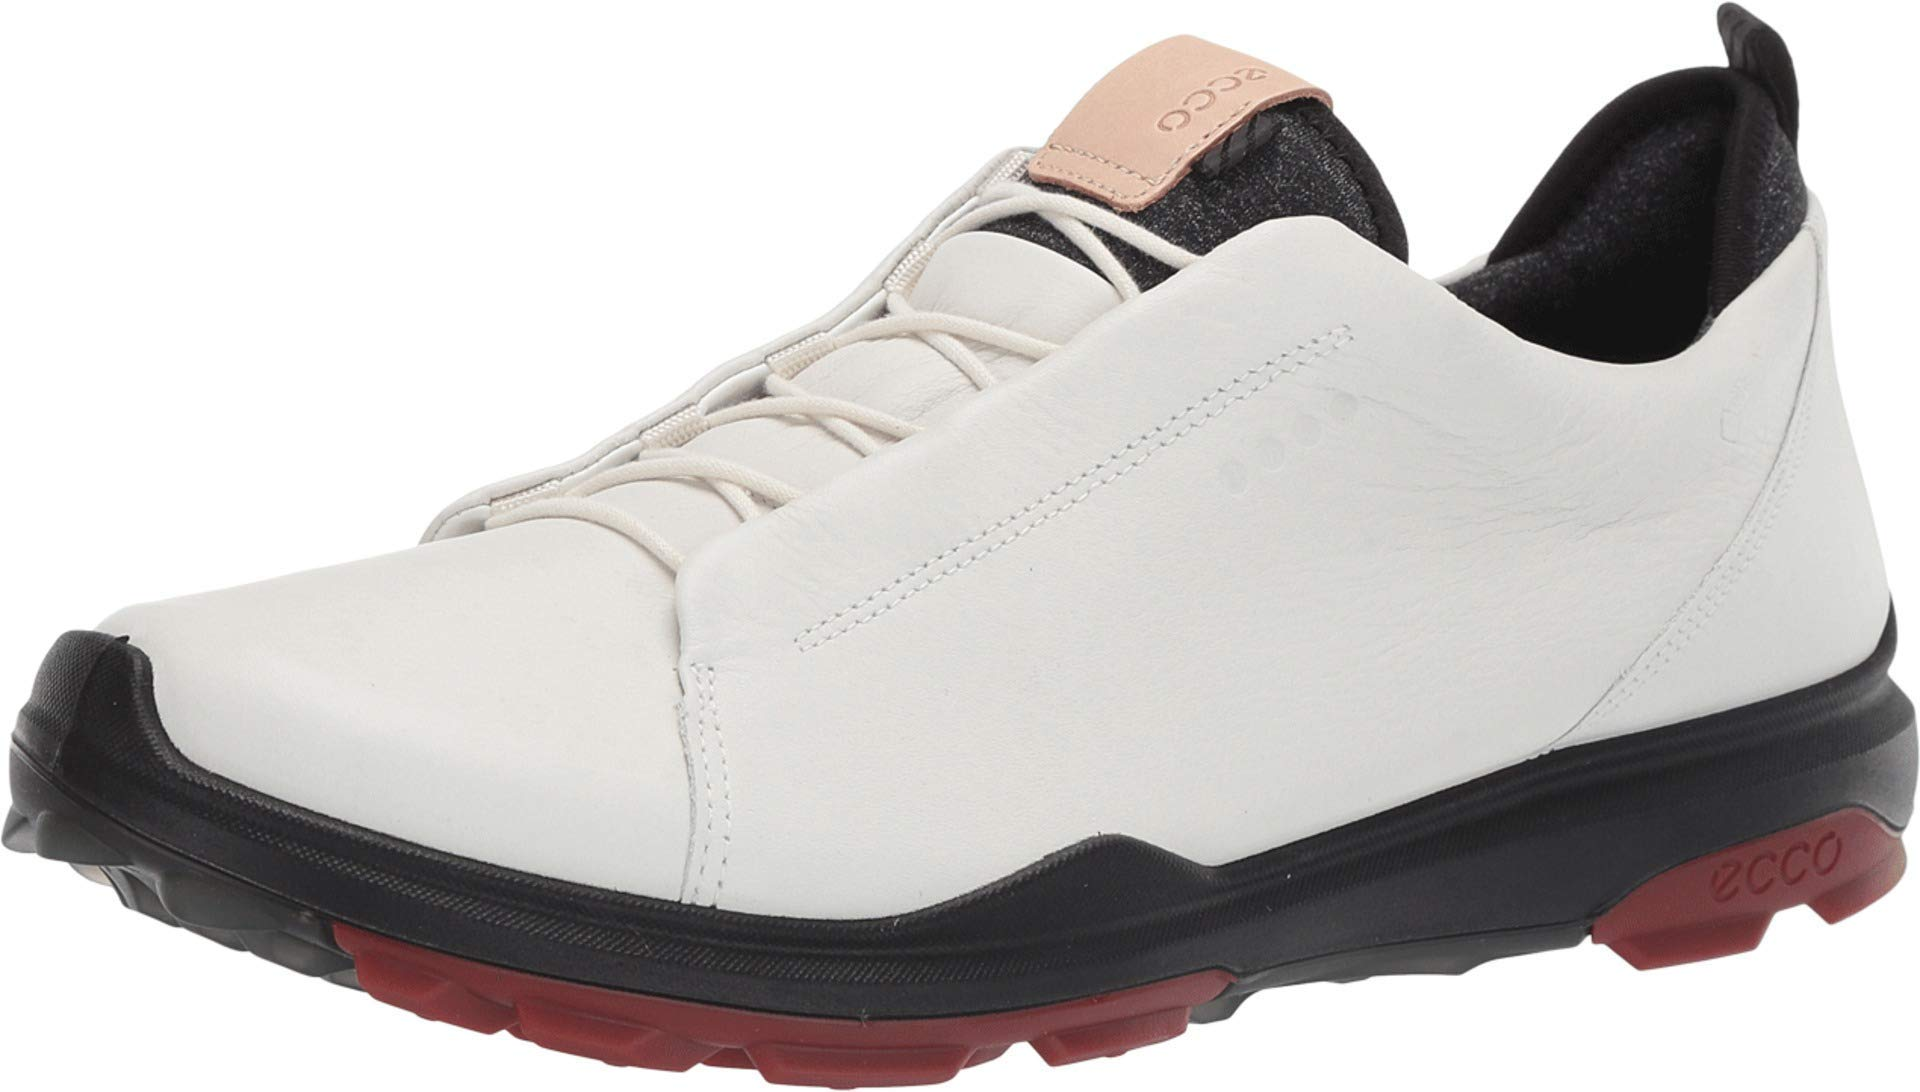 ECCO Men's Biom Hybrid 3 Gore-Tex Golf Shoe White Open lace 39 M EU (5-5.5 US)